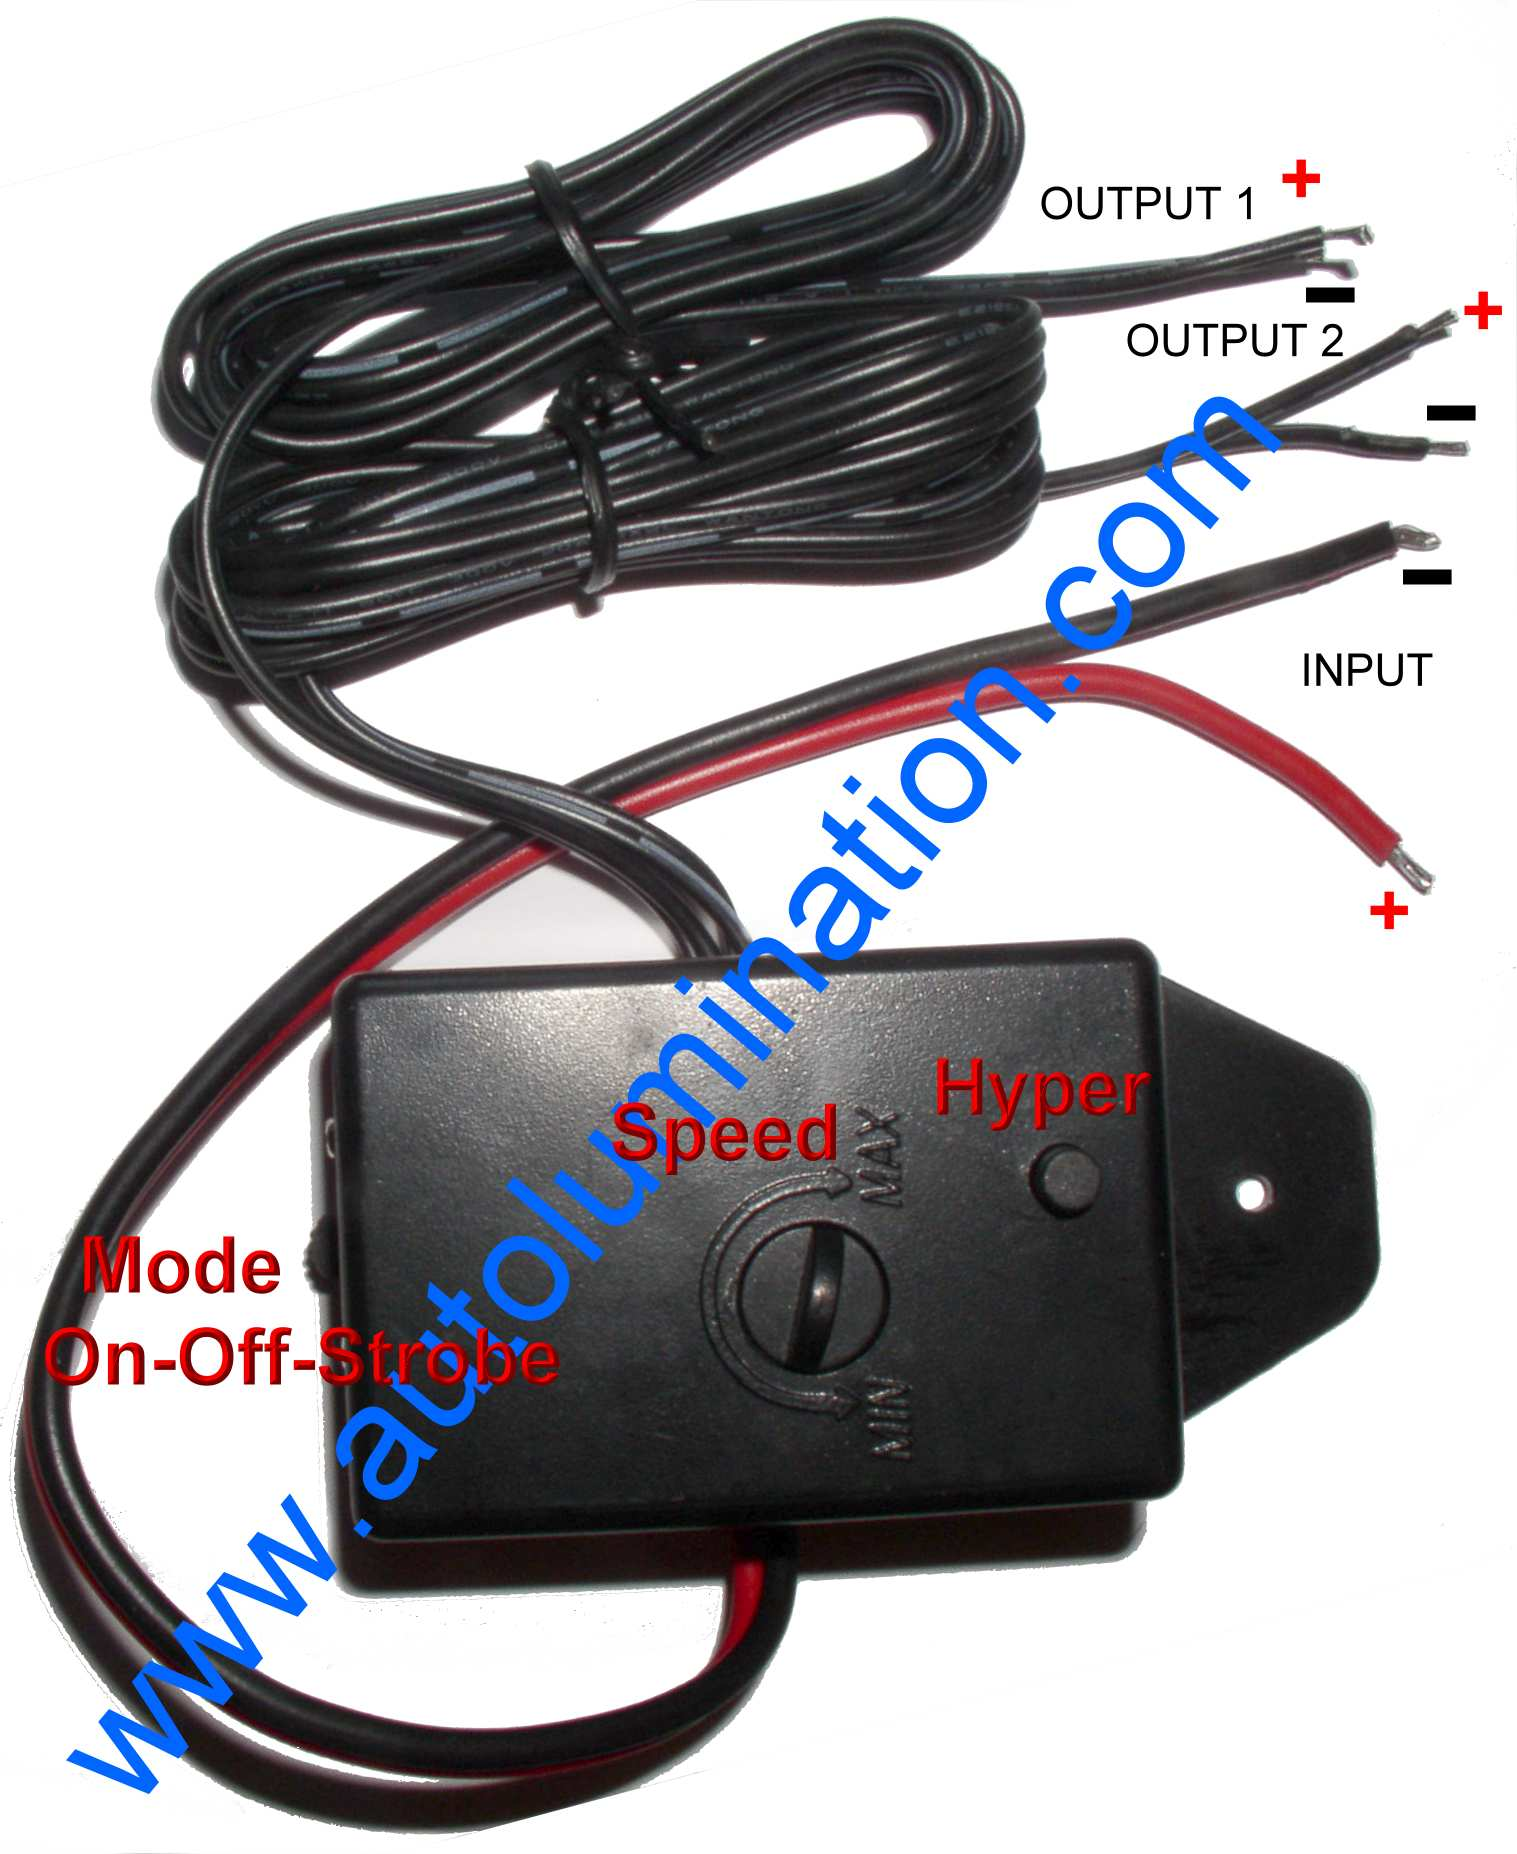 Led Flasher Circuit Together With 555 Timer Flashing Brake Light Braker Module Installtion Instructions Strobe